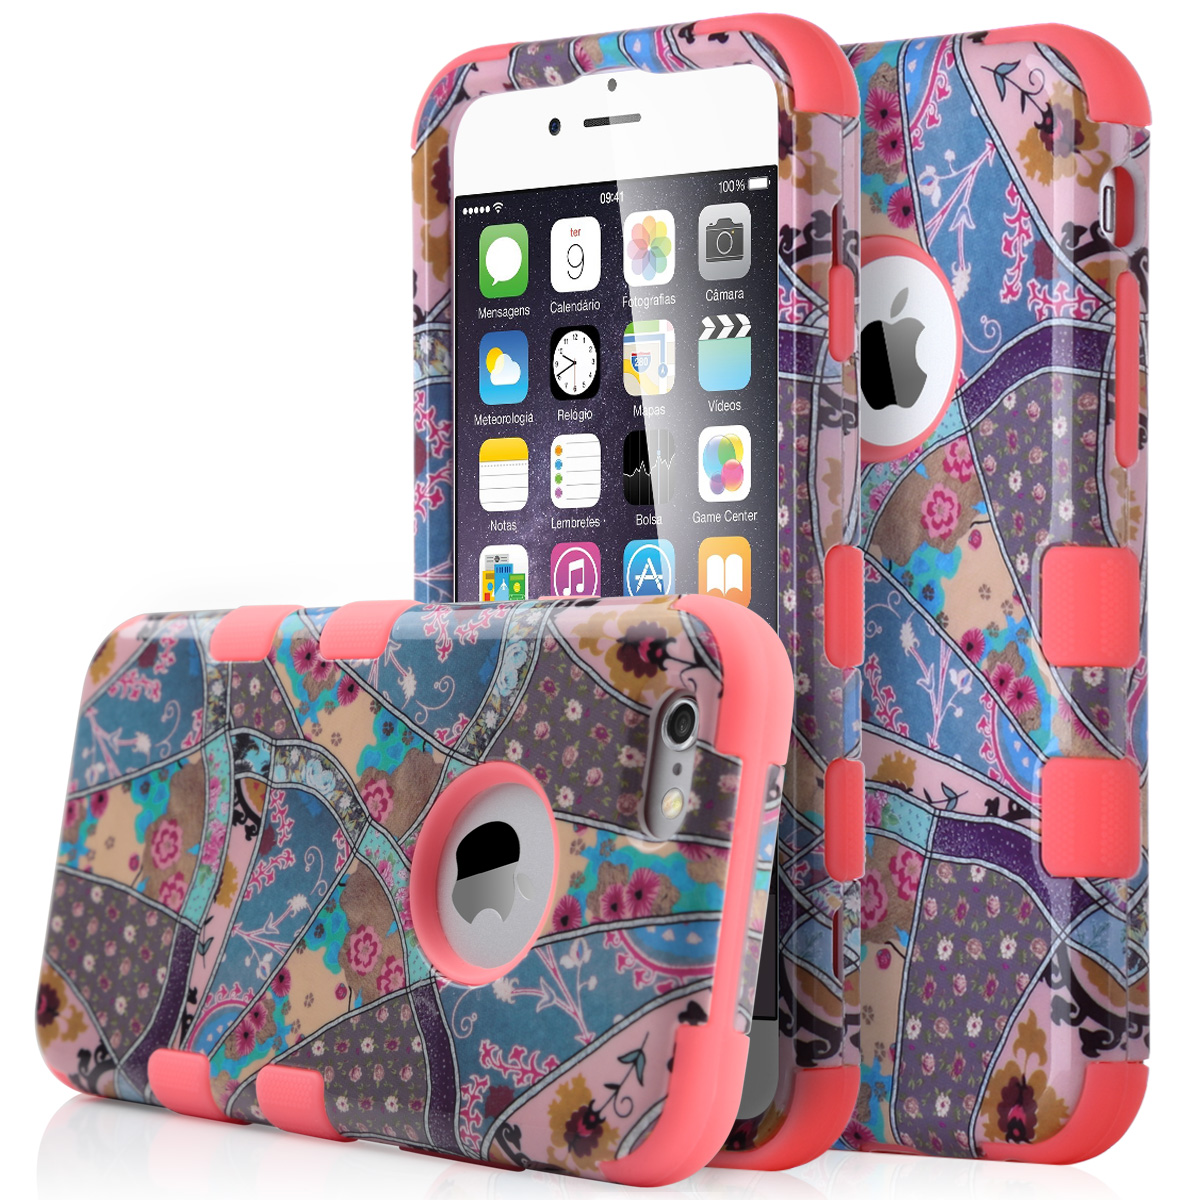 """Shockproof Hybrid Rugged Rubber Hard Cover Case for iPhone 6 4.7"""" / 6 Plus 5.5"""""""